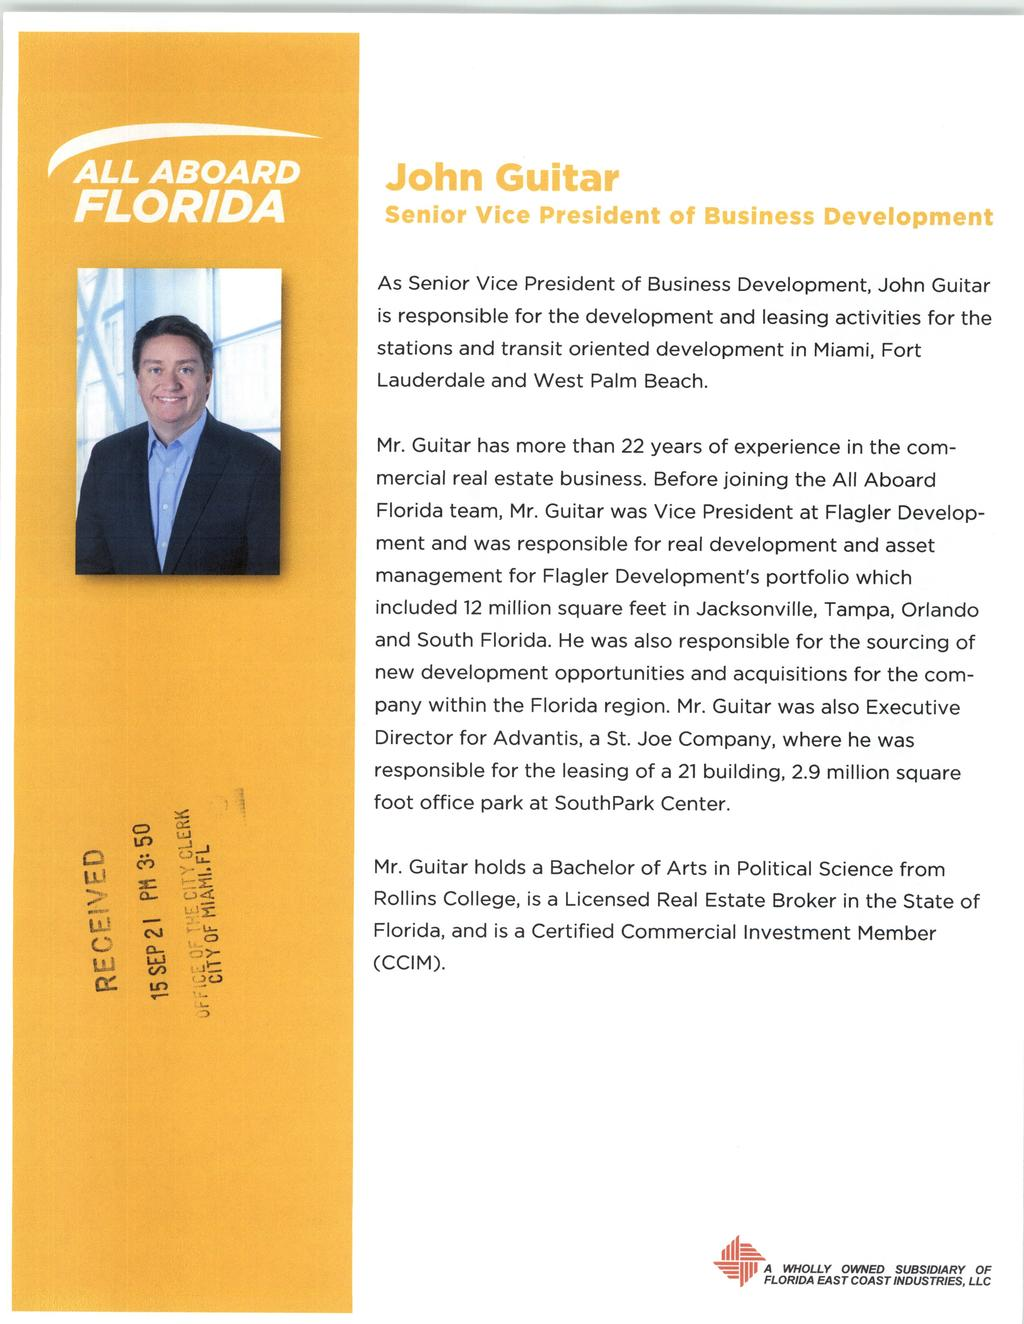 As Senior Vice President of Business Development, John Guitar is responsible for the development and leasing activities for the stations and transit oriented development in Miami, Fort Lauderdale and